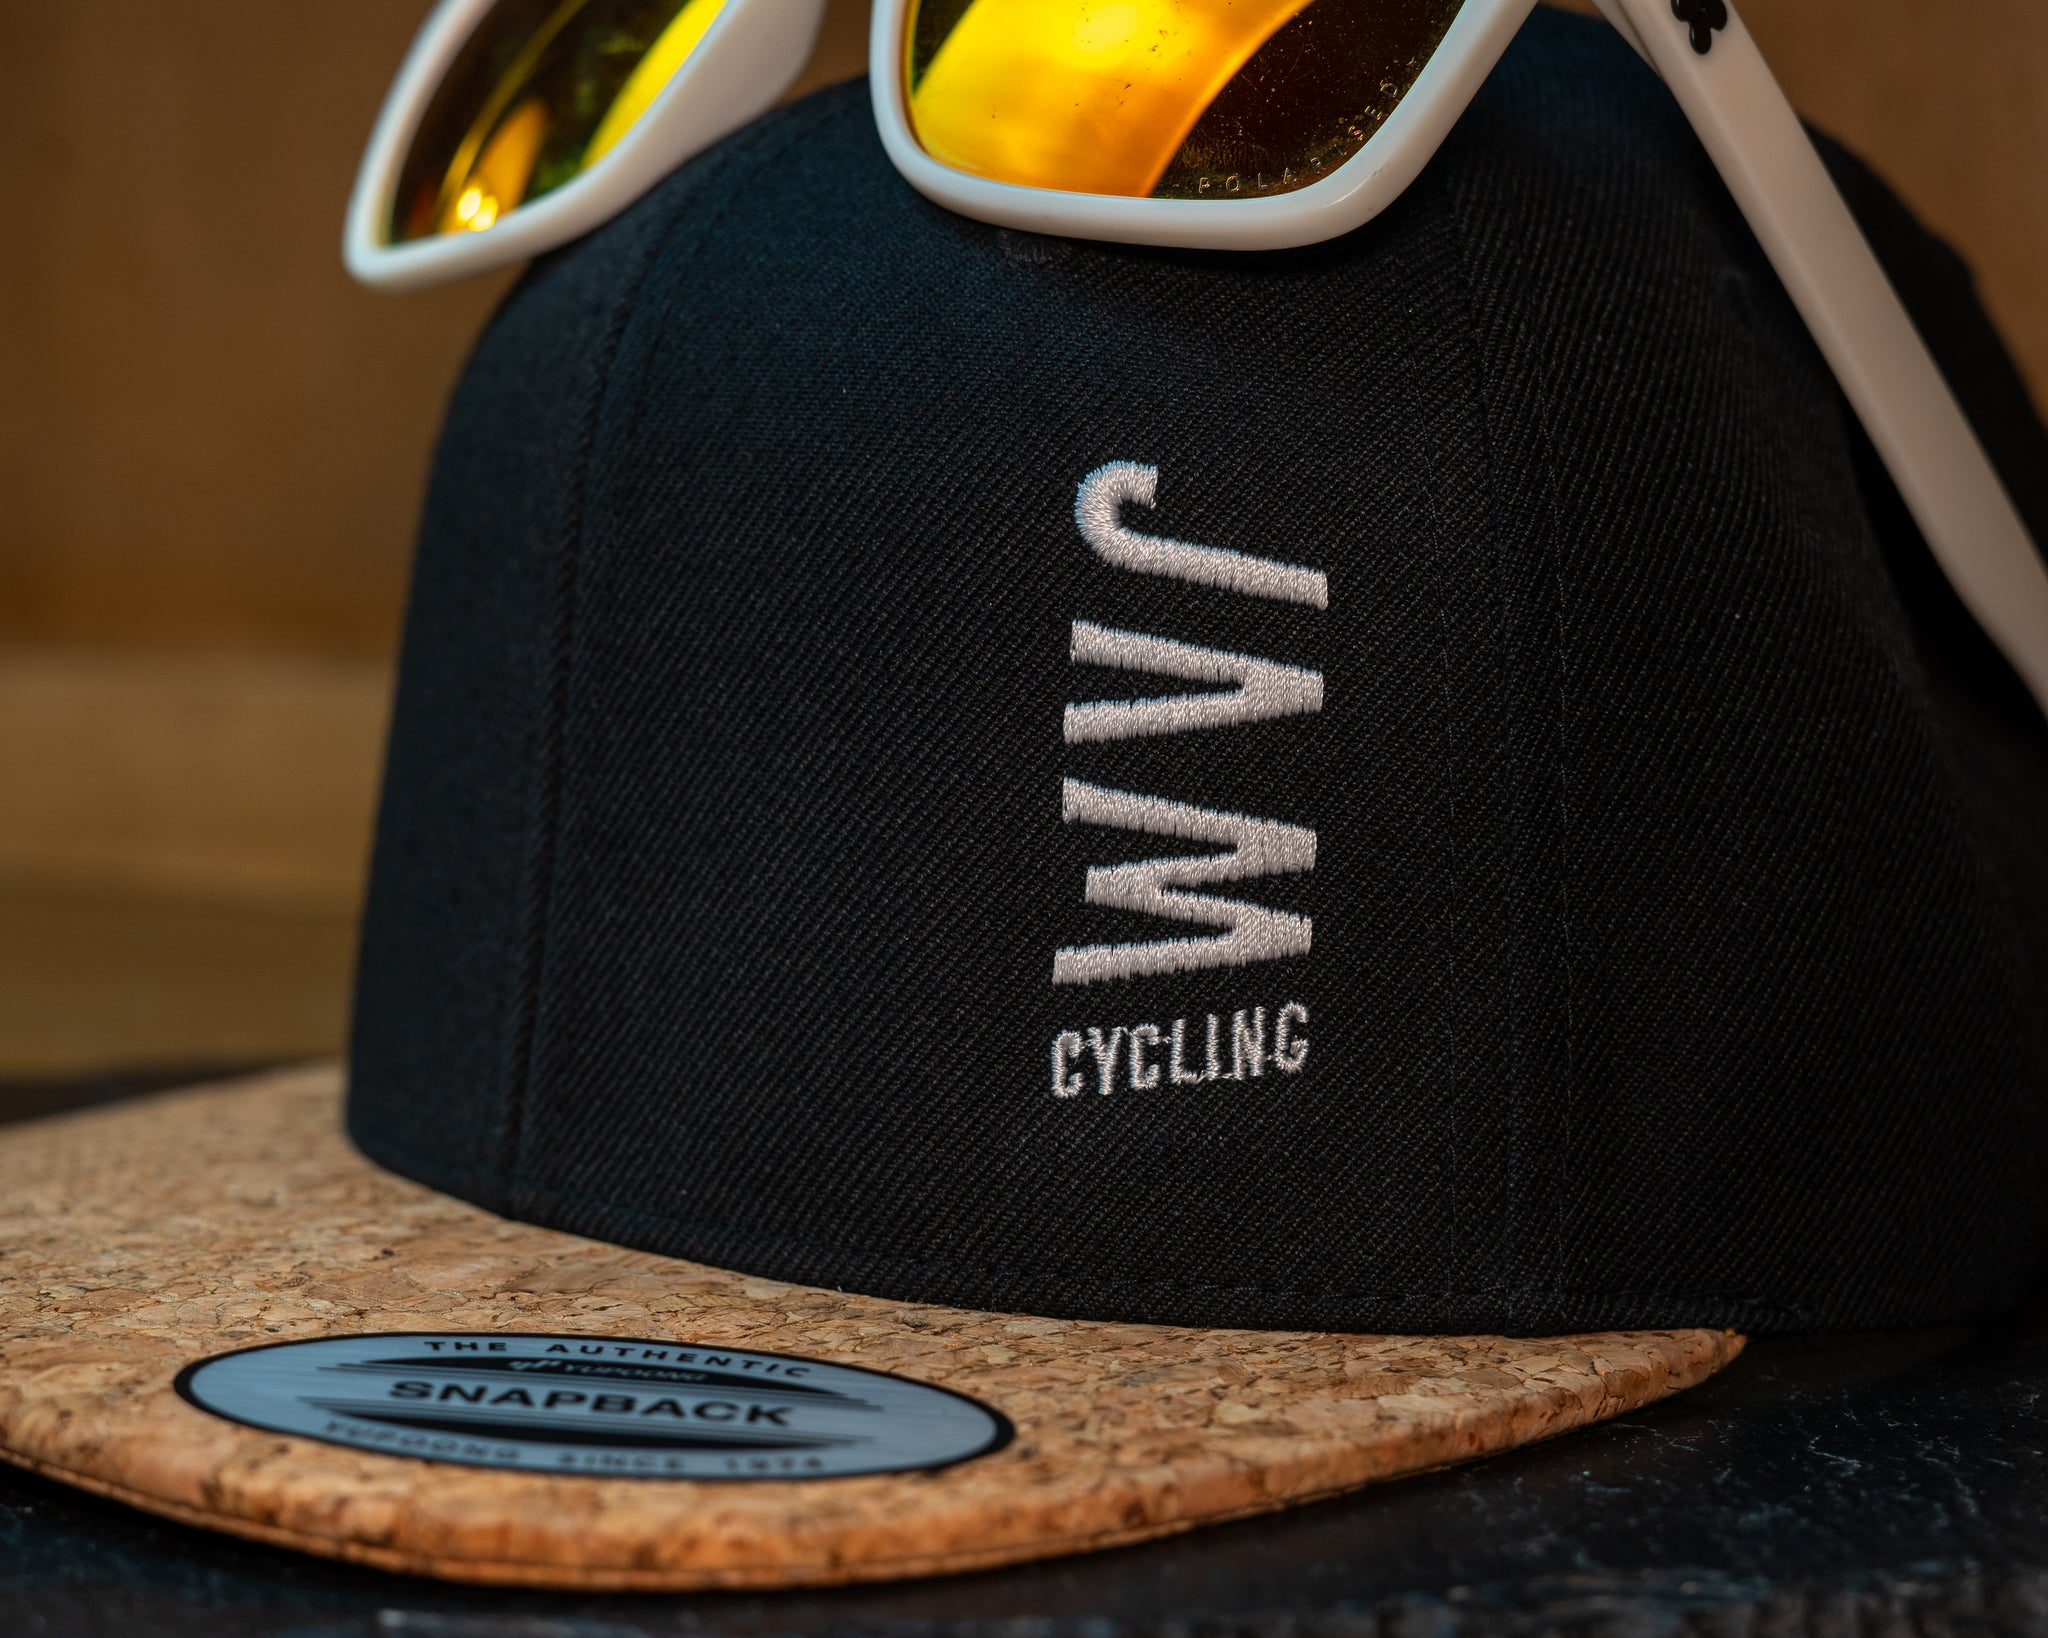 JAM snap back cap featuring sunglasses cork peak stitched JAM logo up close detail on a black slate background cool product photography